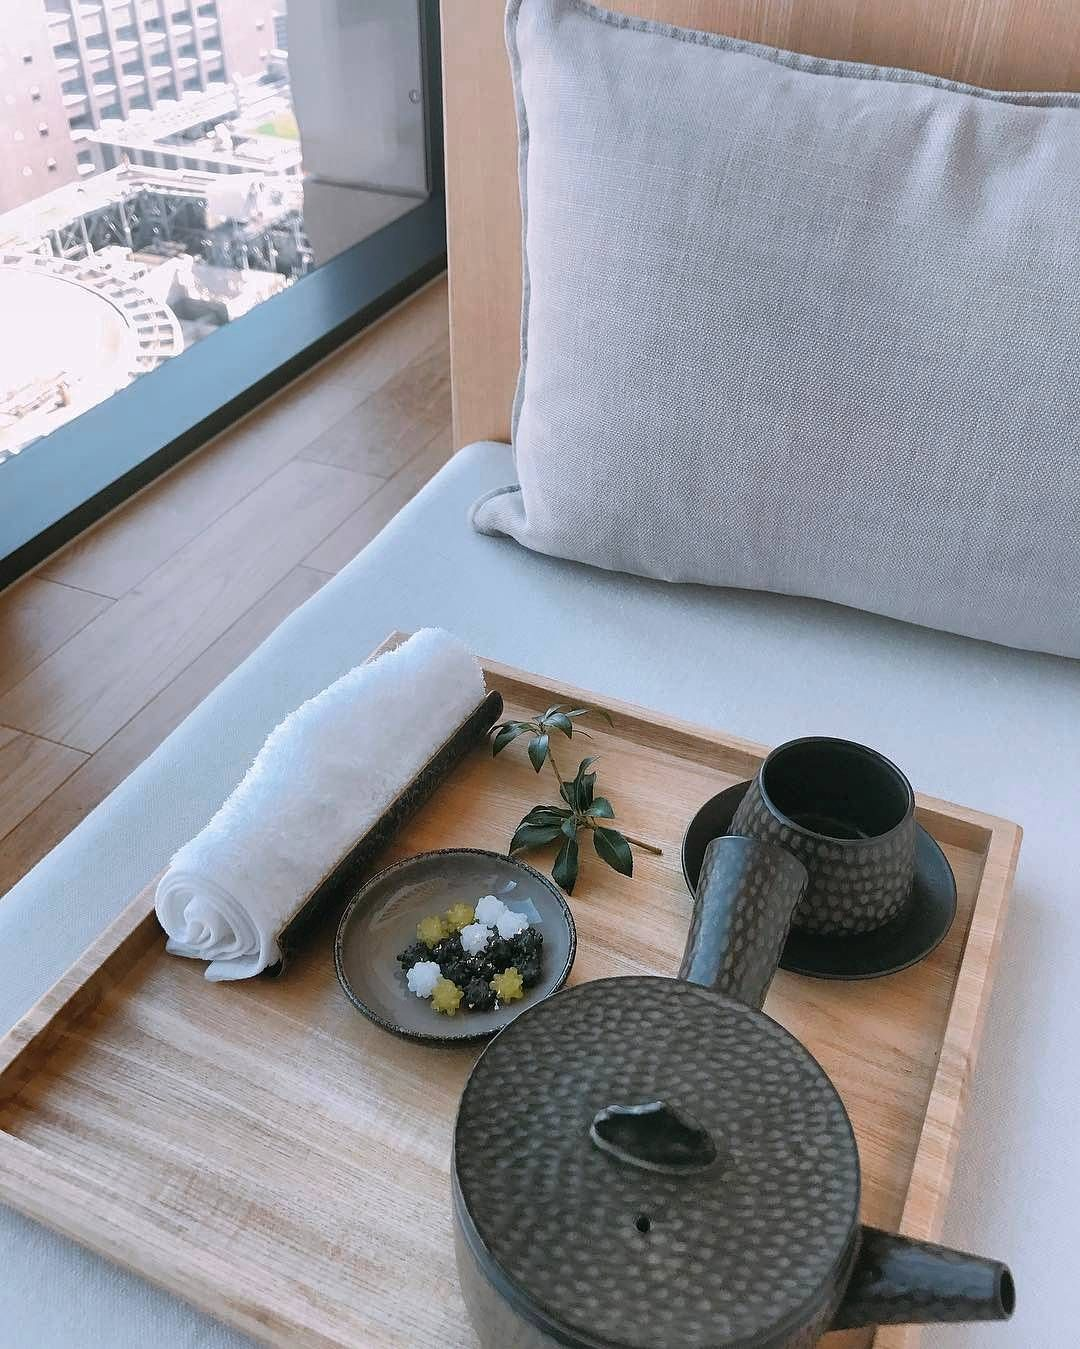 High above the commotion and clamor of the city, the spa at ...